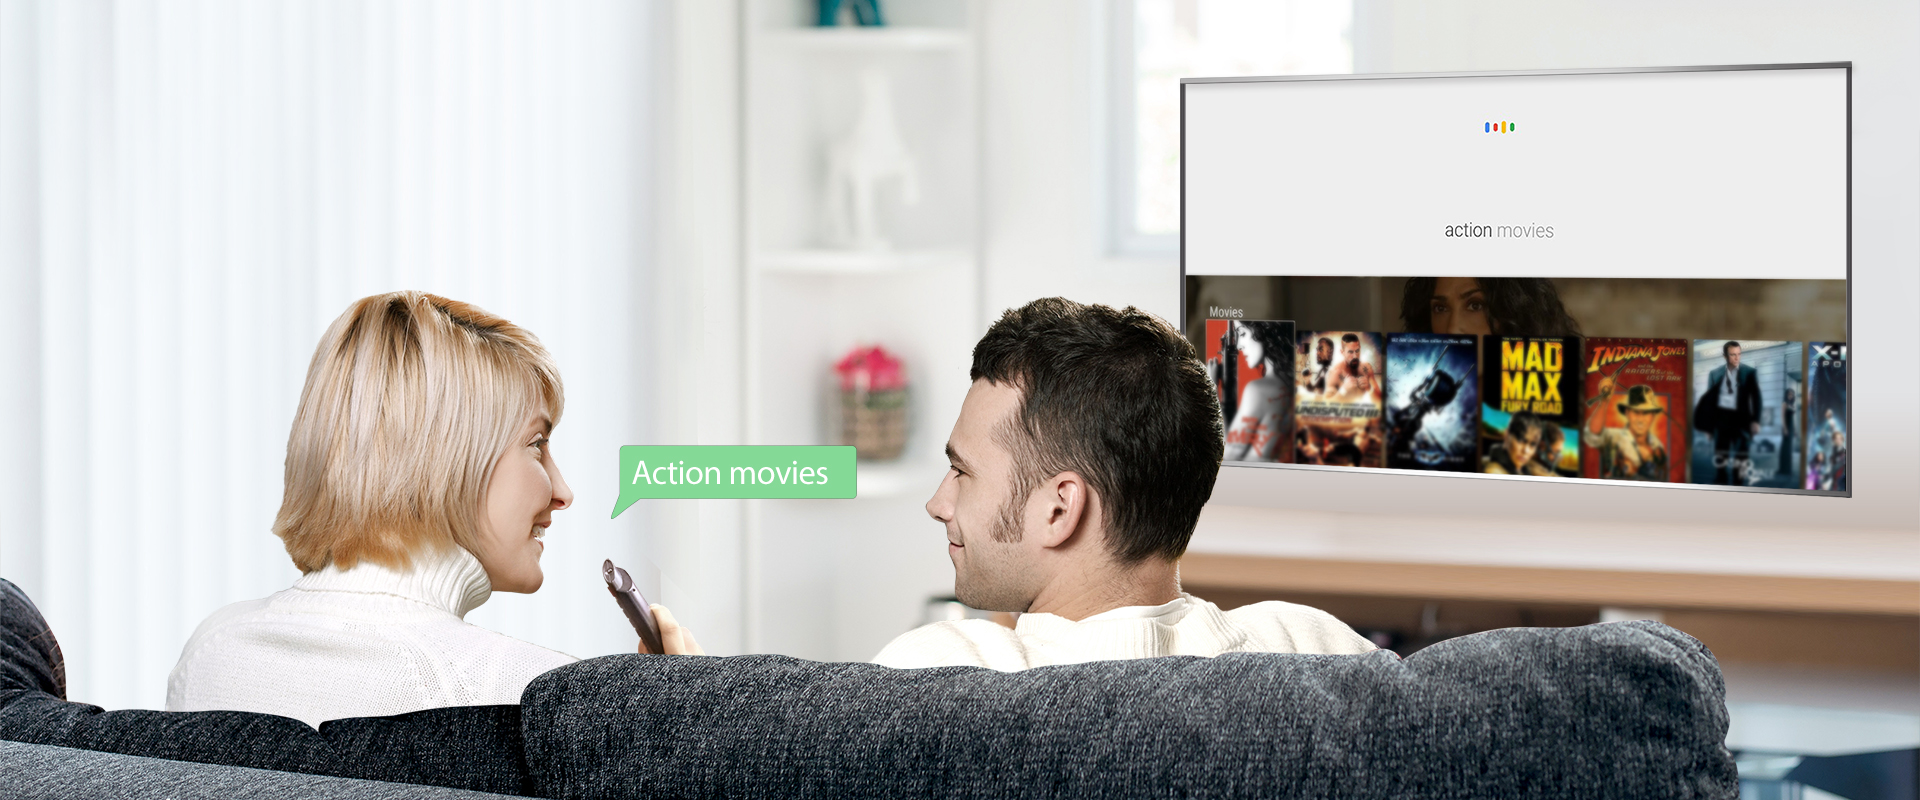 TCL tv Voice Search